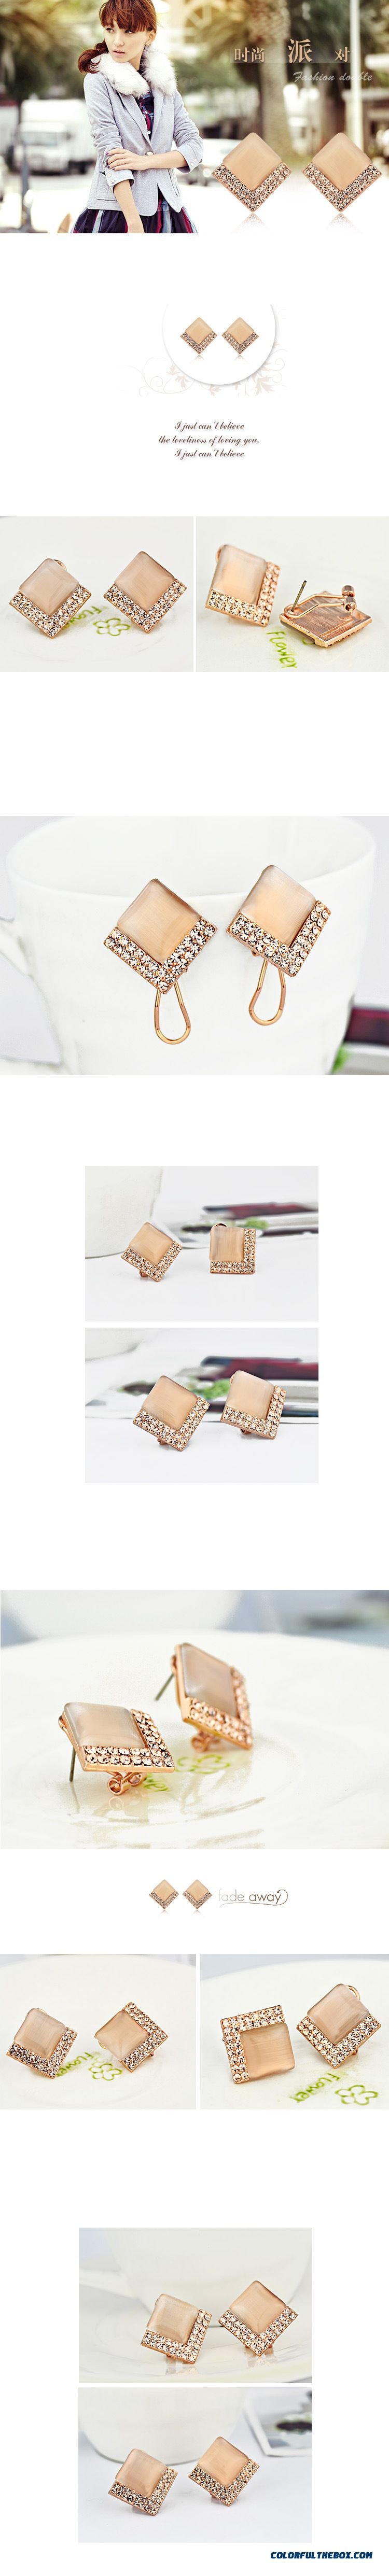 High-grade Prevent Allergy Simple Square Fine Jewelry Women Fashion Earrings - detail images